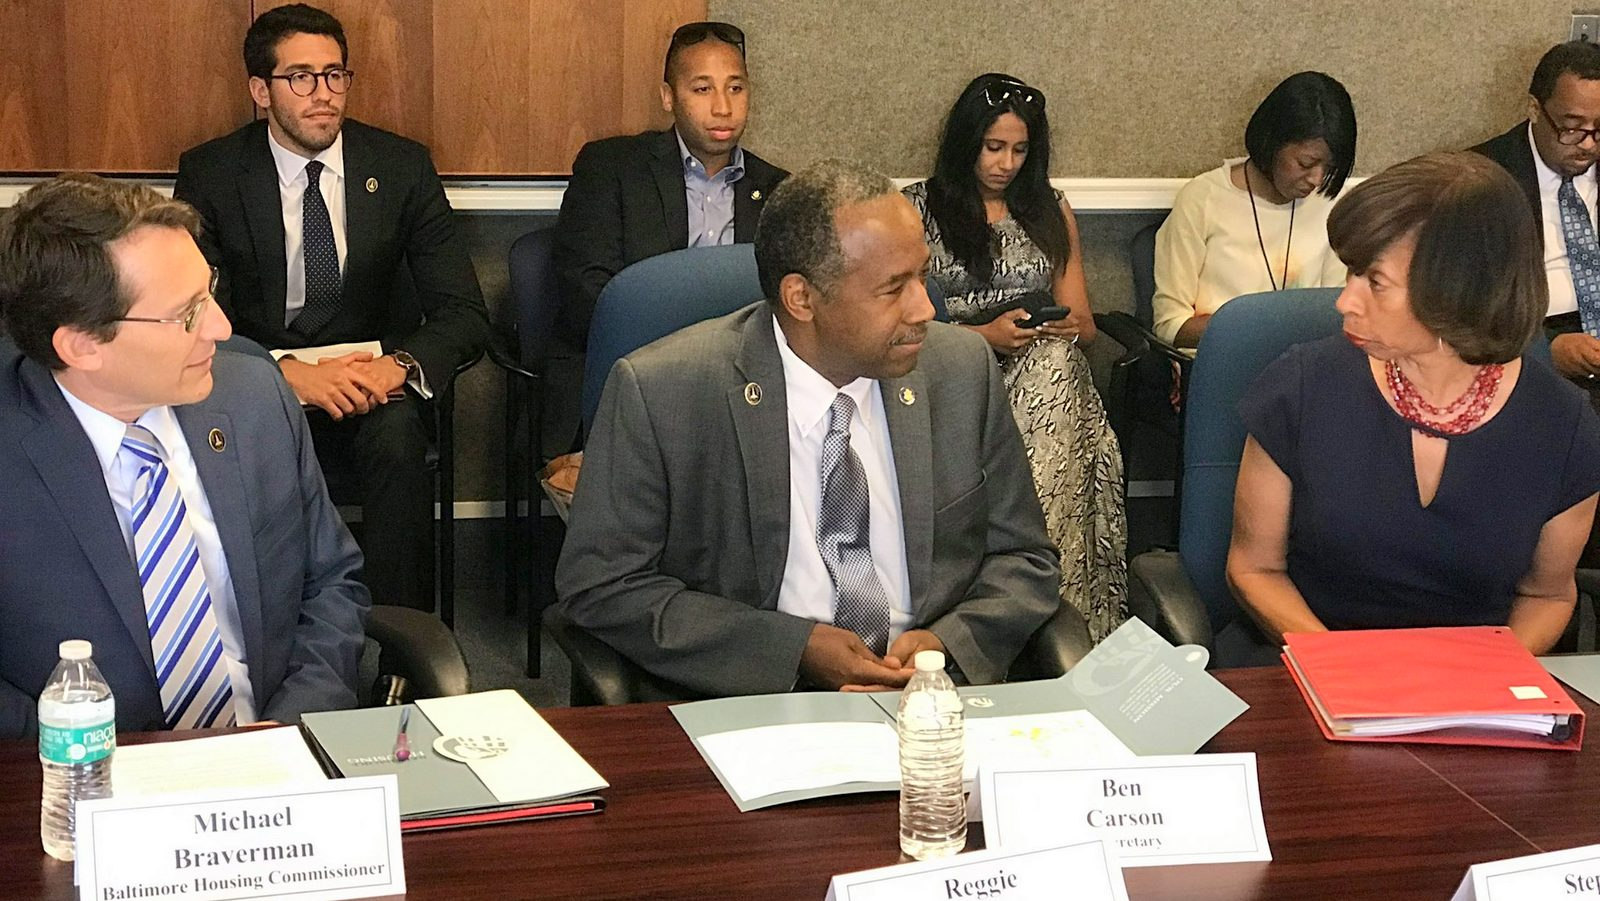 Baltimore Housing Commissioner Michael Braverman (left) and Mayor Catherine Pugh (right) discuss the city's housing needs with U.S. Sec. of Housing and Urban Development Ben Carson. (Mayor's Office)